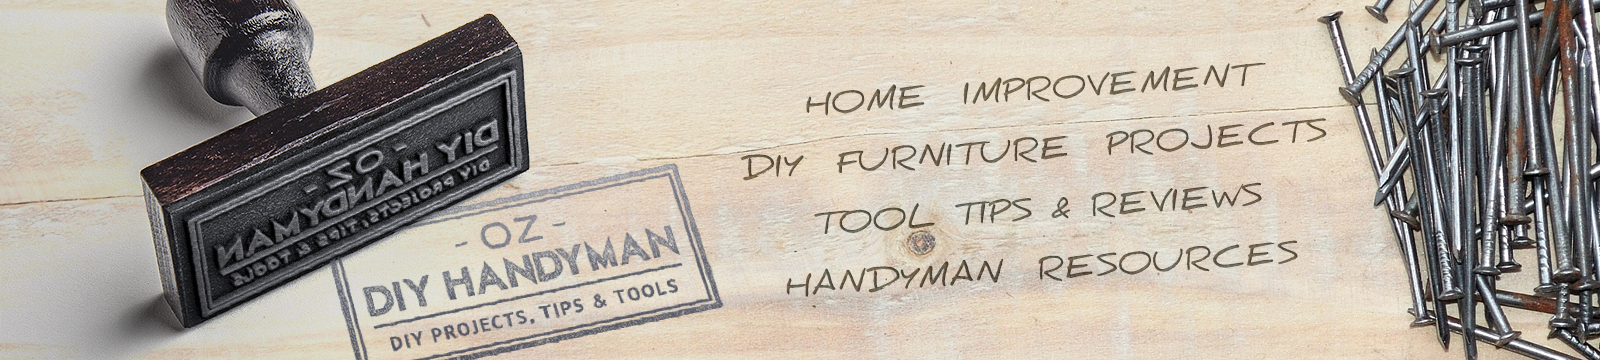 Oz DIY Handyman – Home Improvement – Header